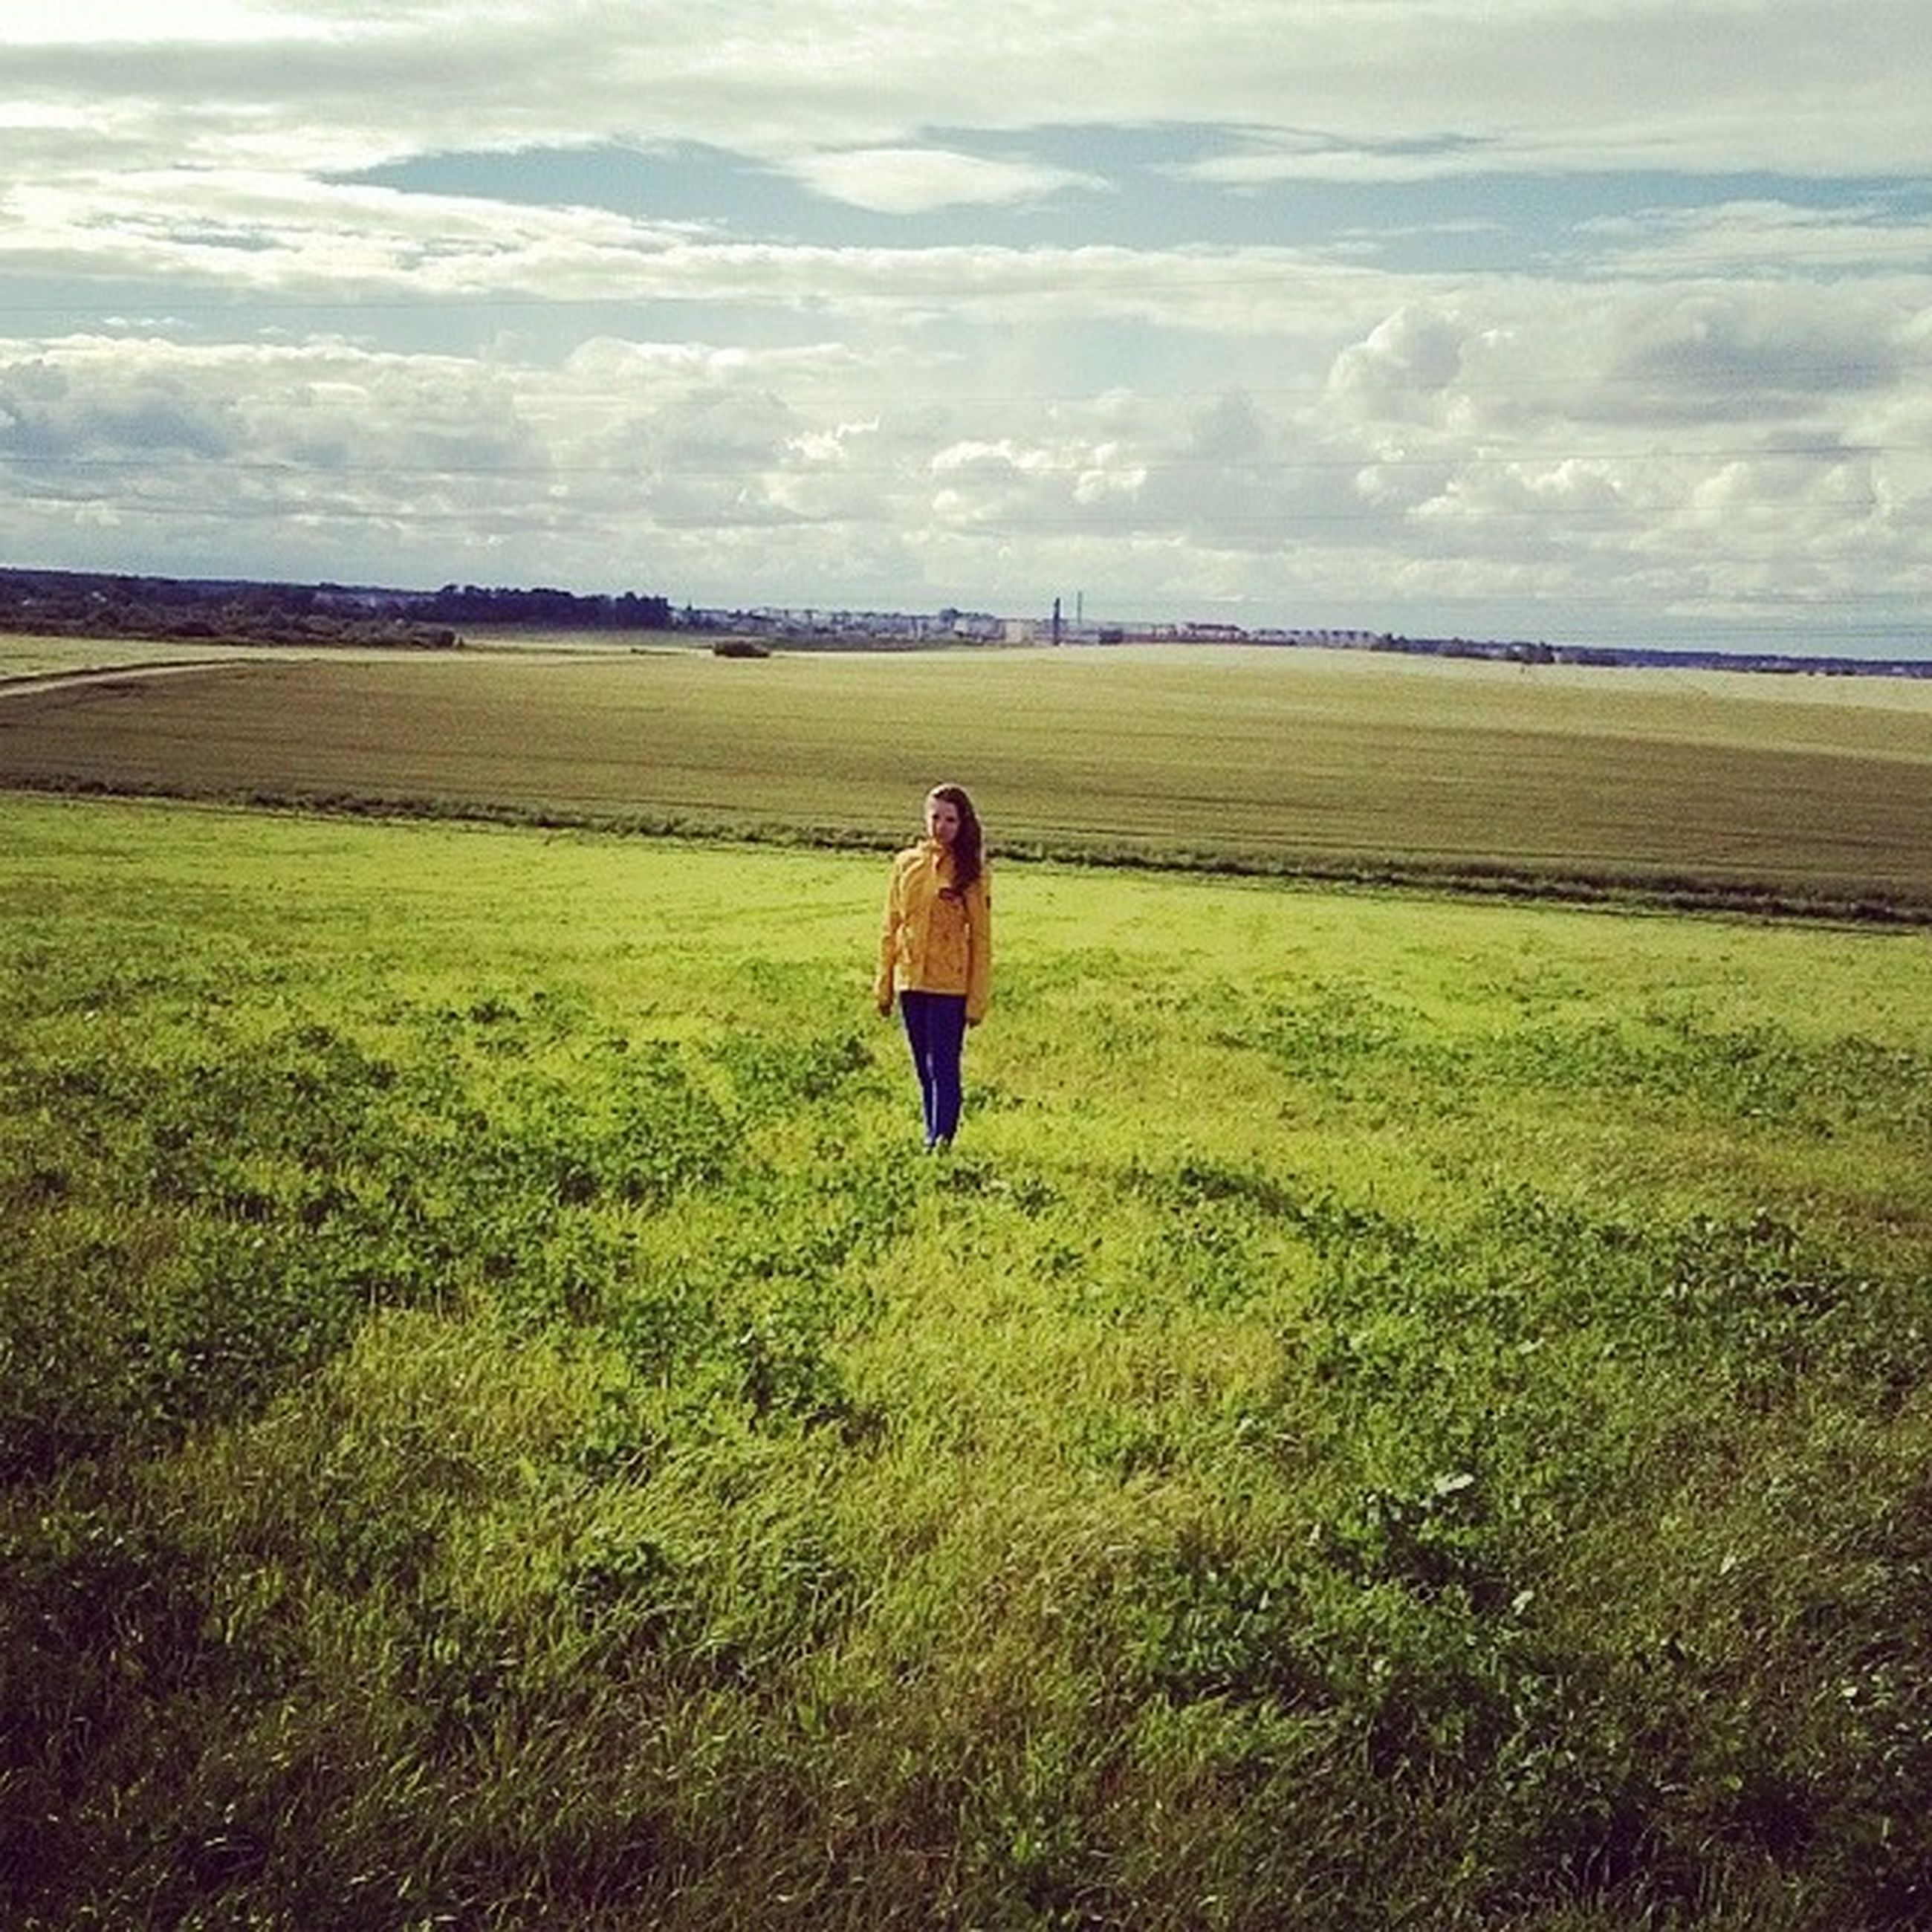 grass, field, sky, rear view, lifestyles, full length, leisure activity, landscape, casual clothing, tranquility, standing, tranquil scene, grassy, green color, nature, cloud - sky, beauty in nature, scenics